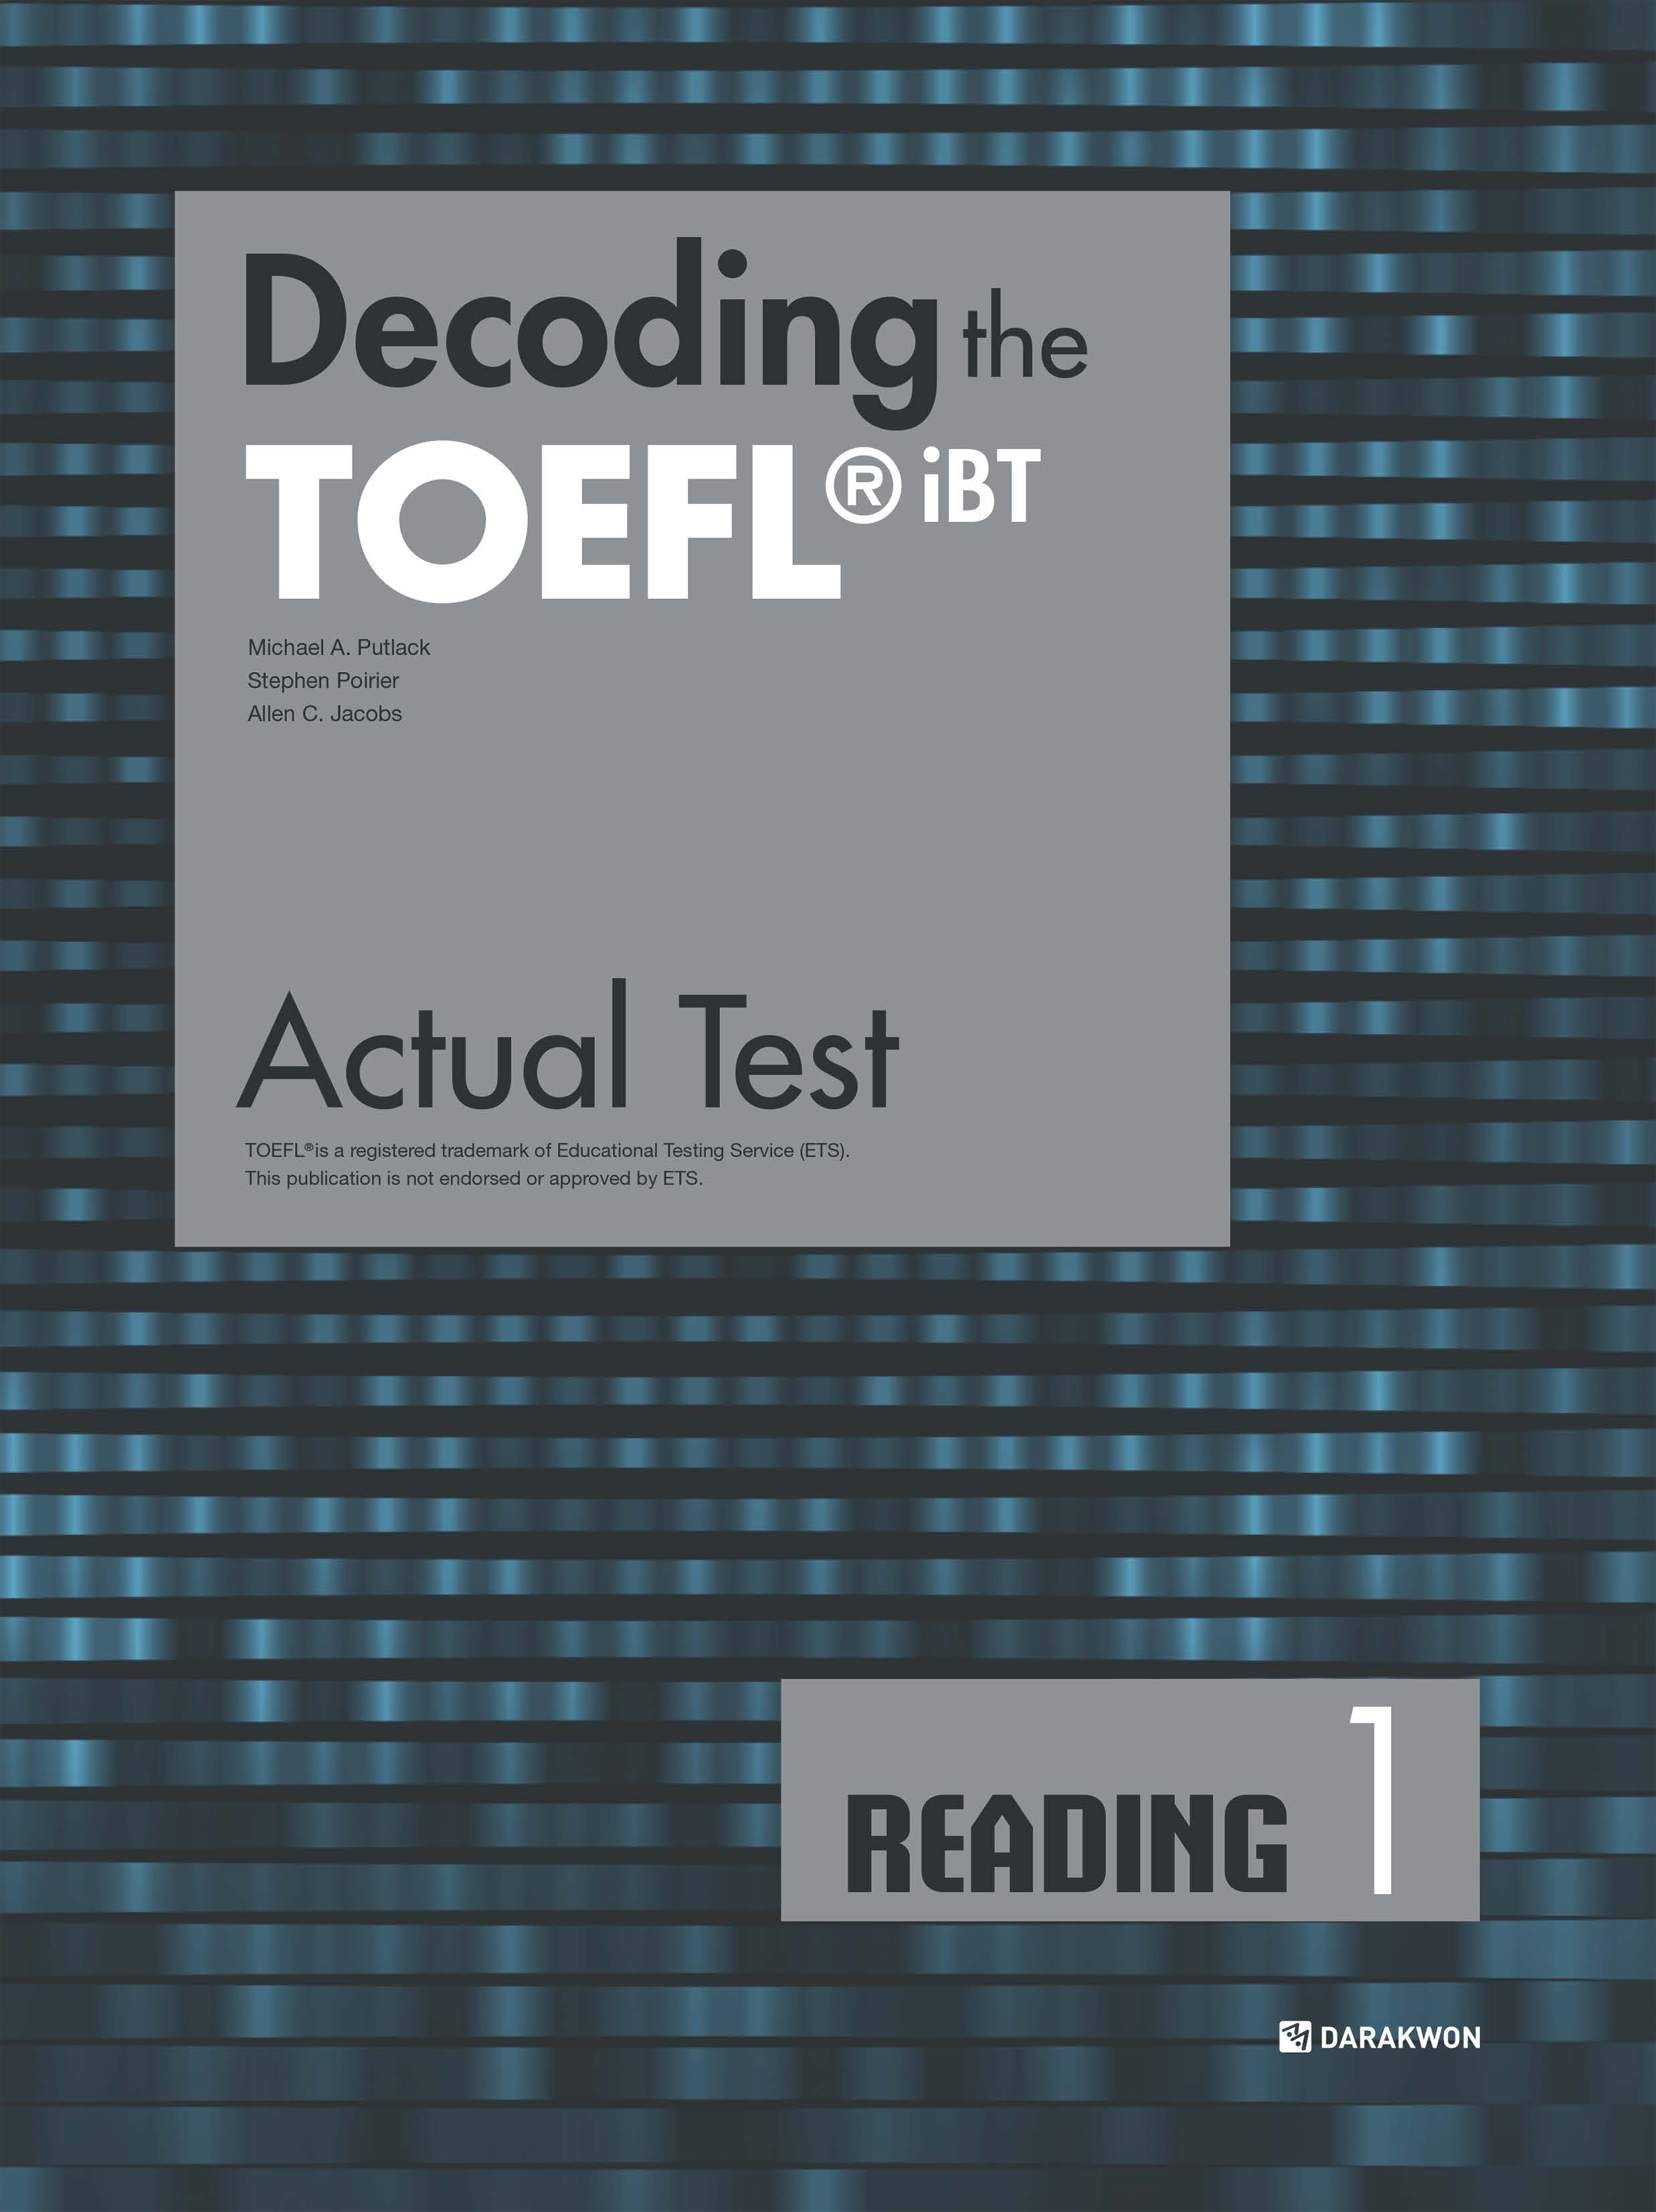 [Decoding the TOEFL iBT Actual Test] Decoding the TOEFL iBT Actual Test READING 1